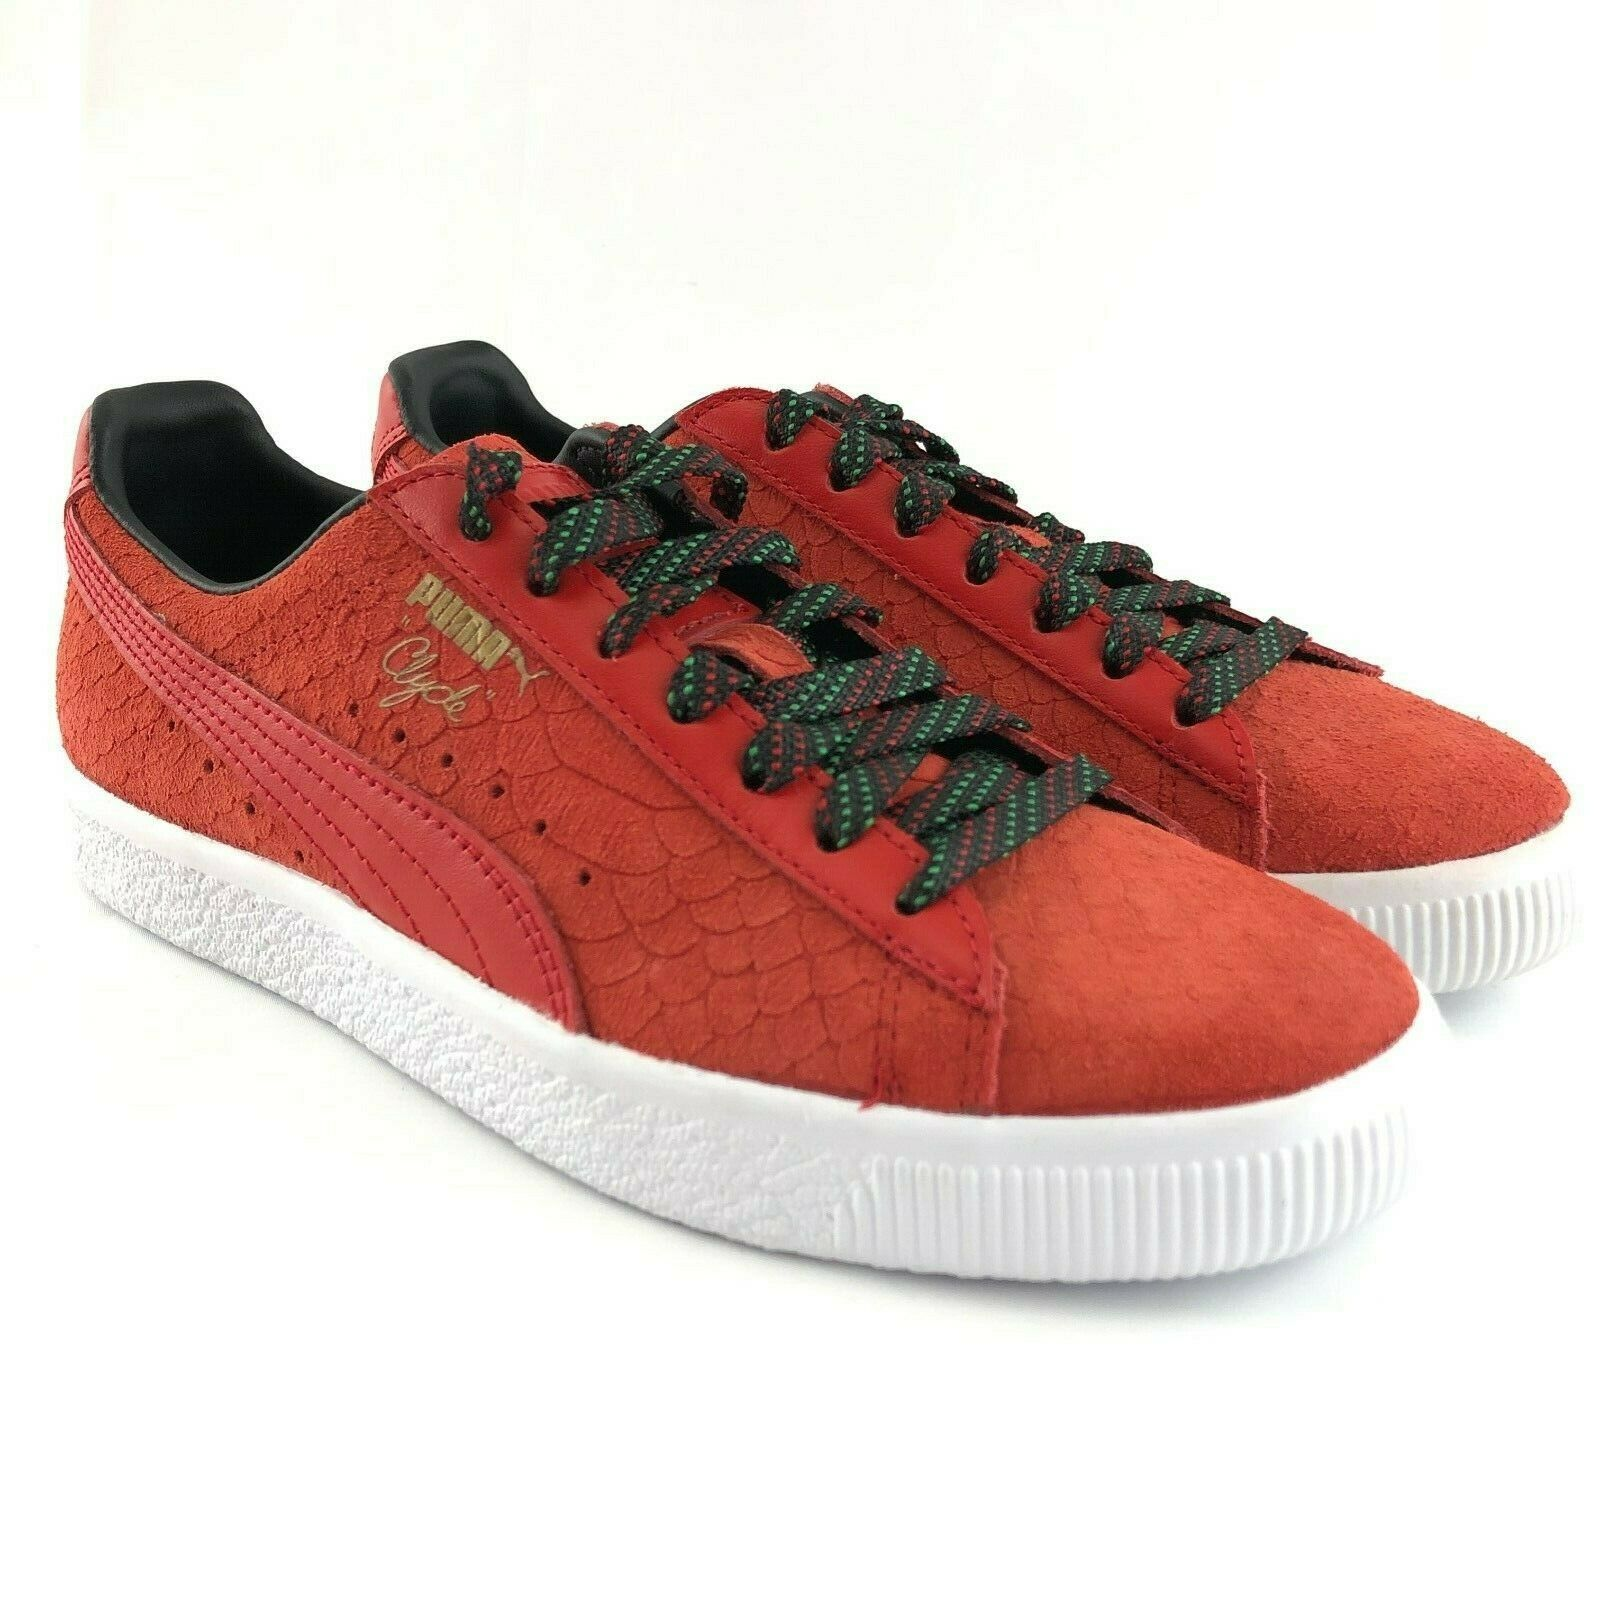 Puma Clyde Red Suede Rasta Womens shoes Size 6.5 Low Top Leather Sneakers New